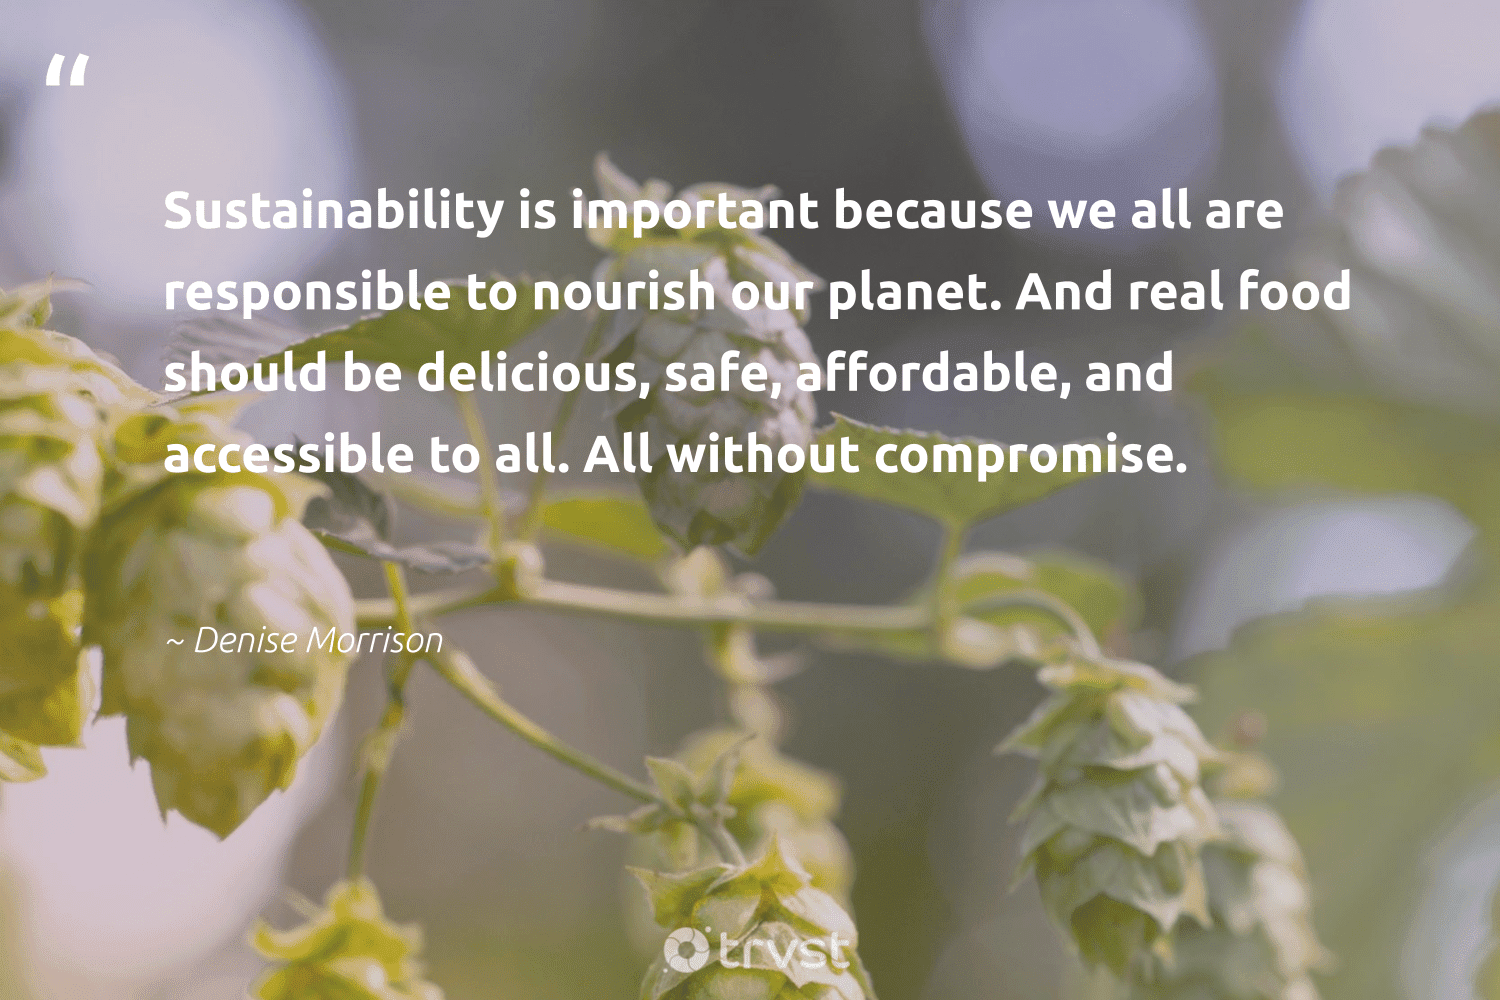 """""""Sustainability is important because we all are responsible to nourish our planet. And real food should be delicious, safe, affordable, and accessible to all. All without compromise.""""  - Denise Morrison #trvst #quotes #sustainability #affordable #planet #food #nourish #100percentrenewable #fashion #parisagreement #bethechange #renewable"""